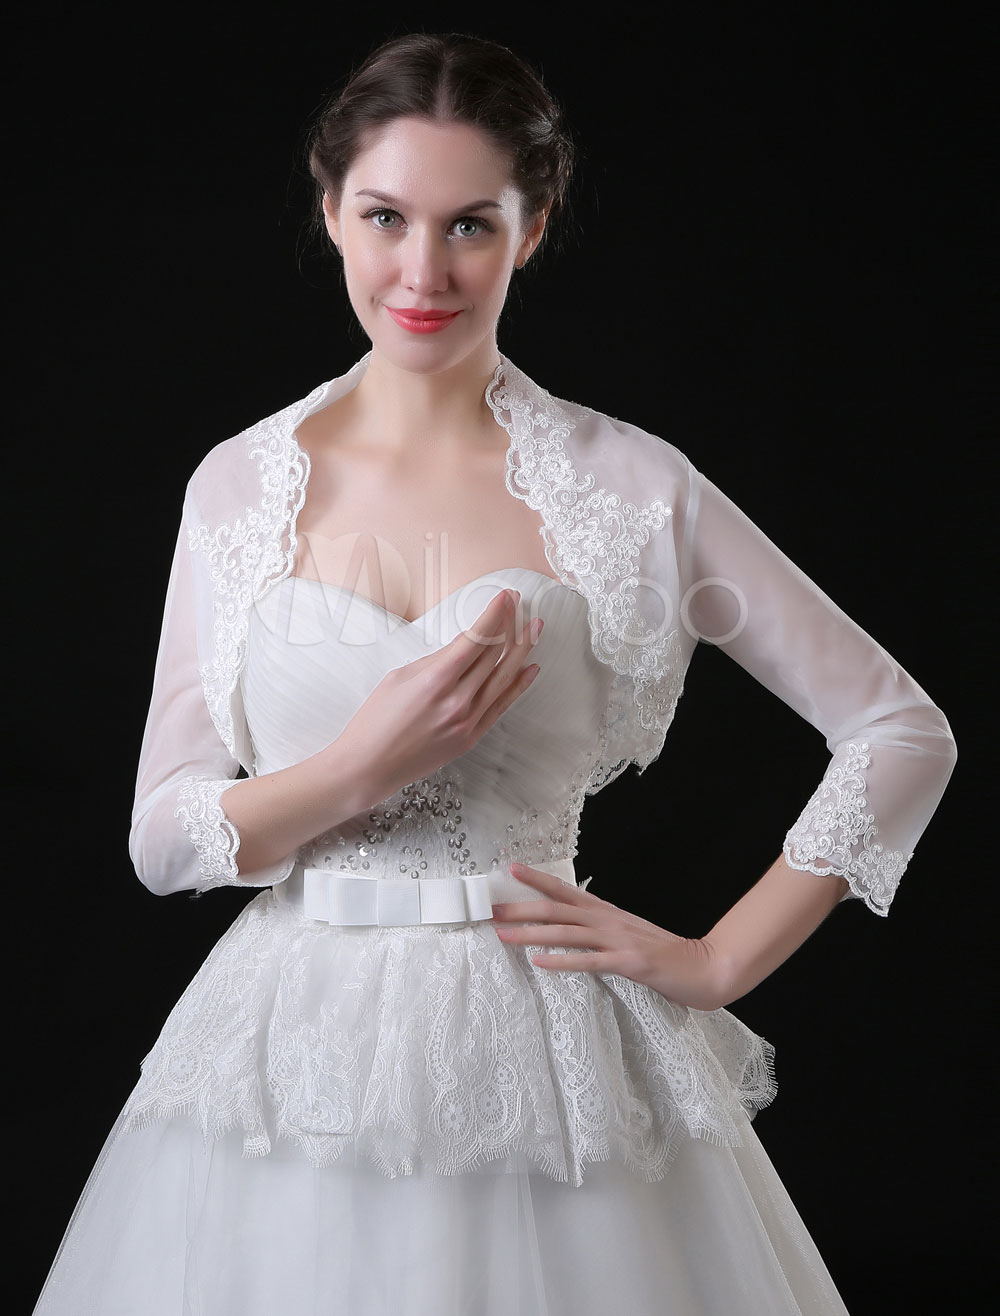 Wedding Bolero Jacket 3/4 Sleeve Lace Applique Bridal Top Cover Ups